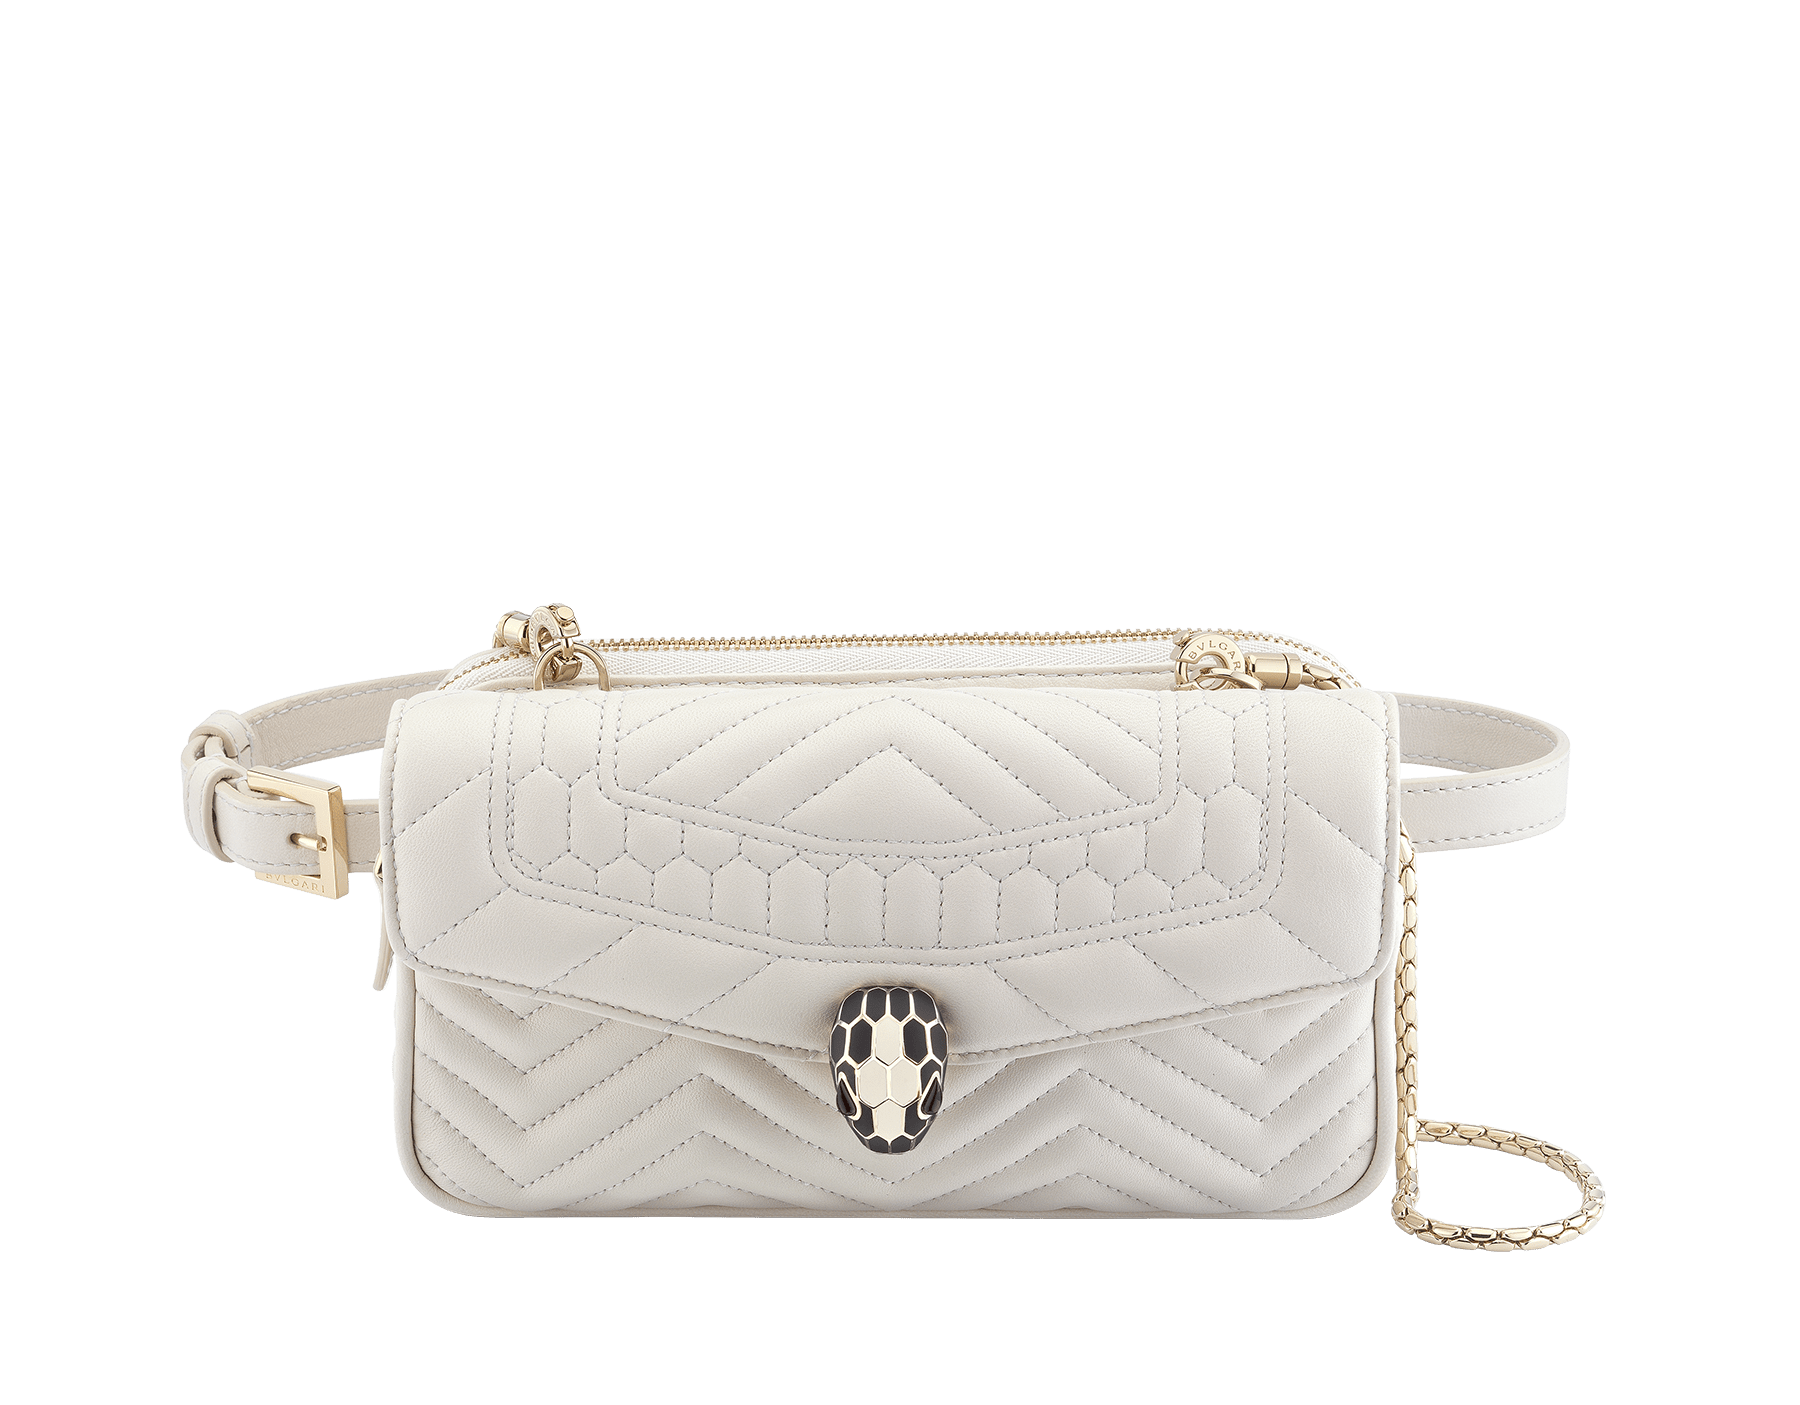 Belt Bag Serpenti Forever in white quilted chevron nappa leather. Hardware in light gold plated brass and snakehead closure in matte black and white agate enamel, with eyes in black onyx. 287568 image 1